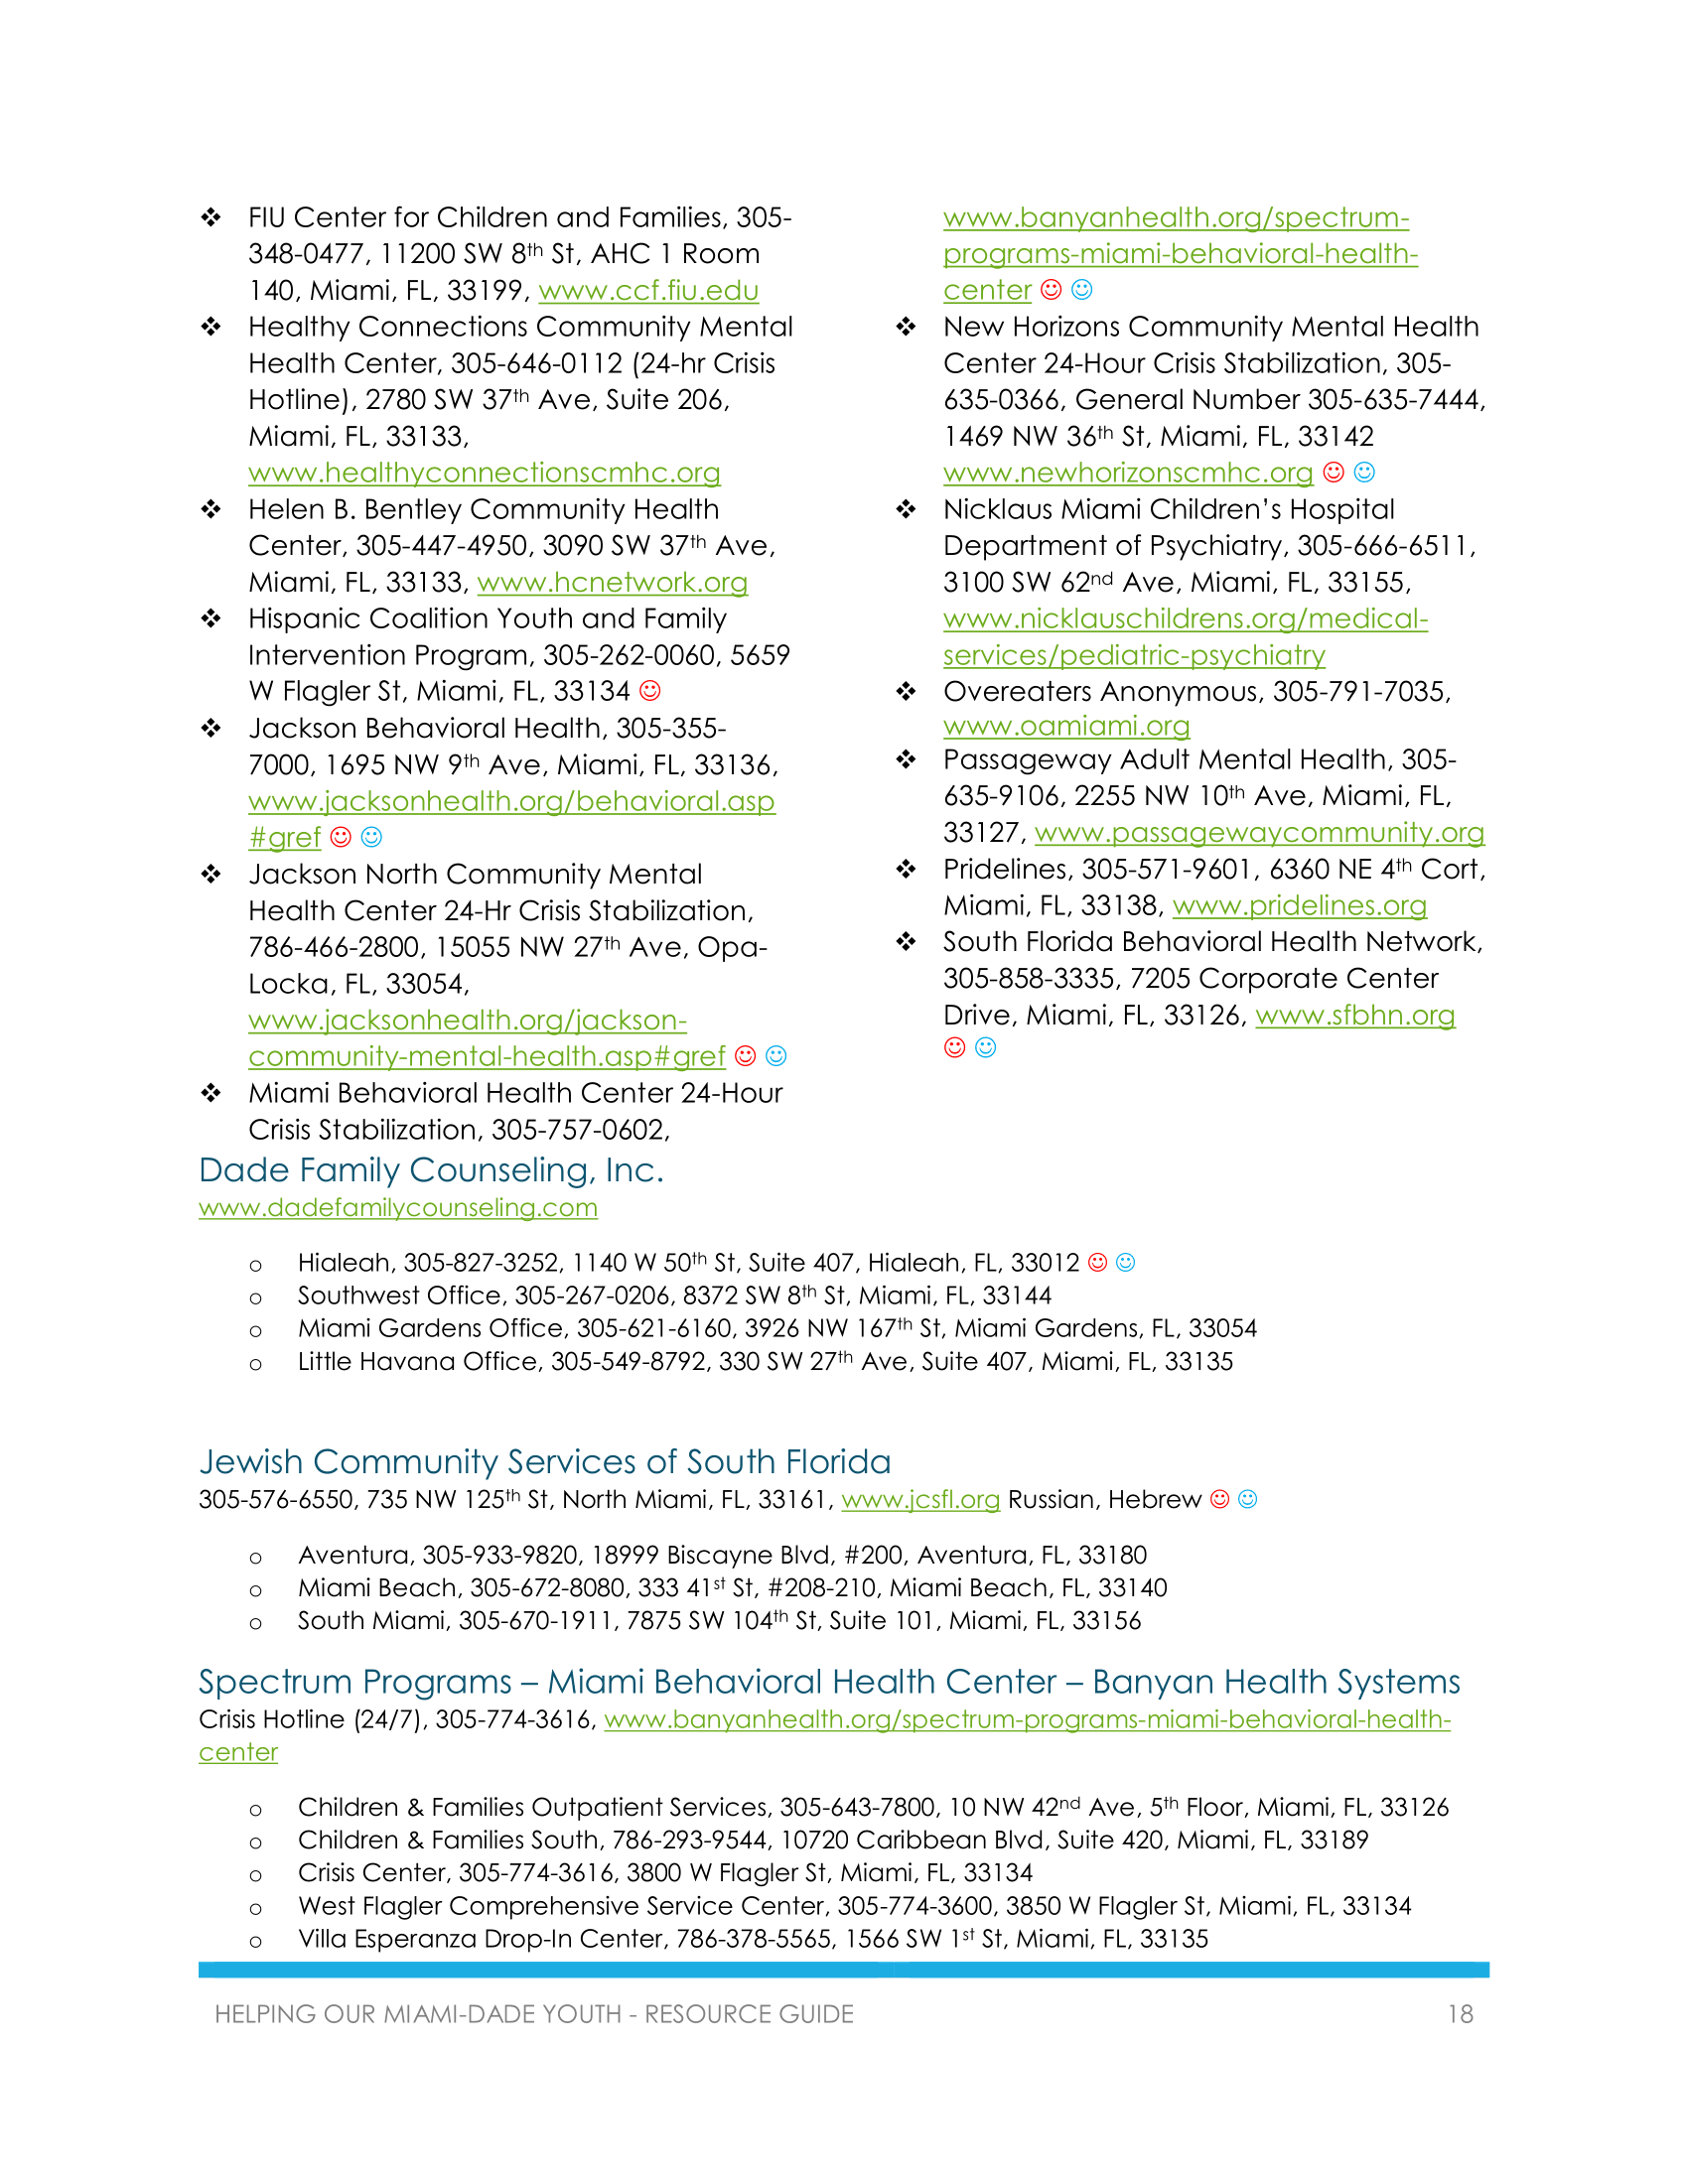 Youth Resource Guide - May 2018-23.png